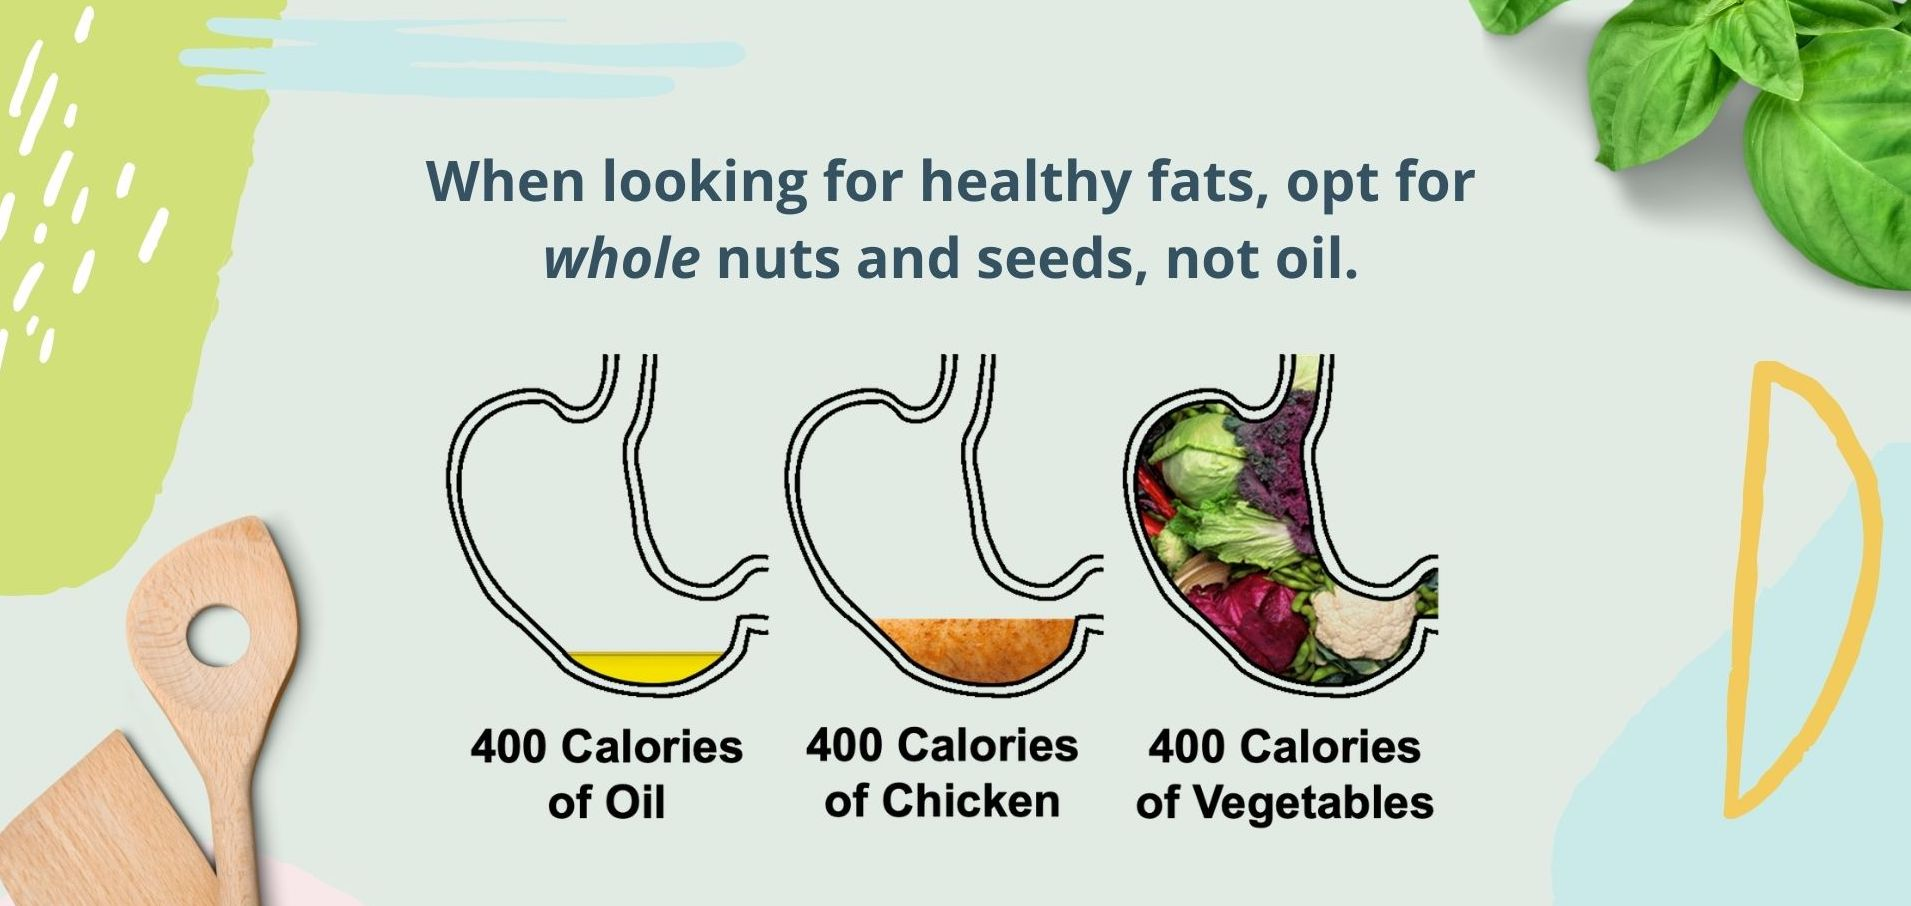 Illustration comparing 400 calories of oil, chicken, and vegetables